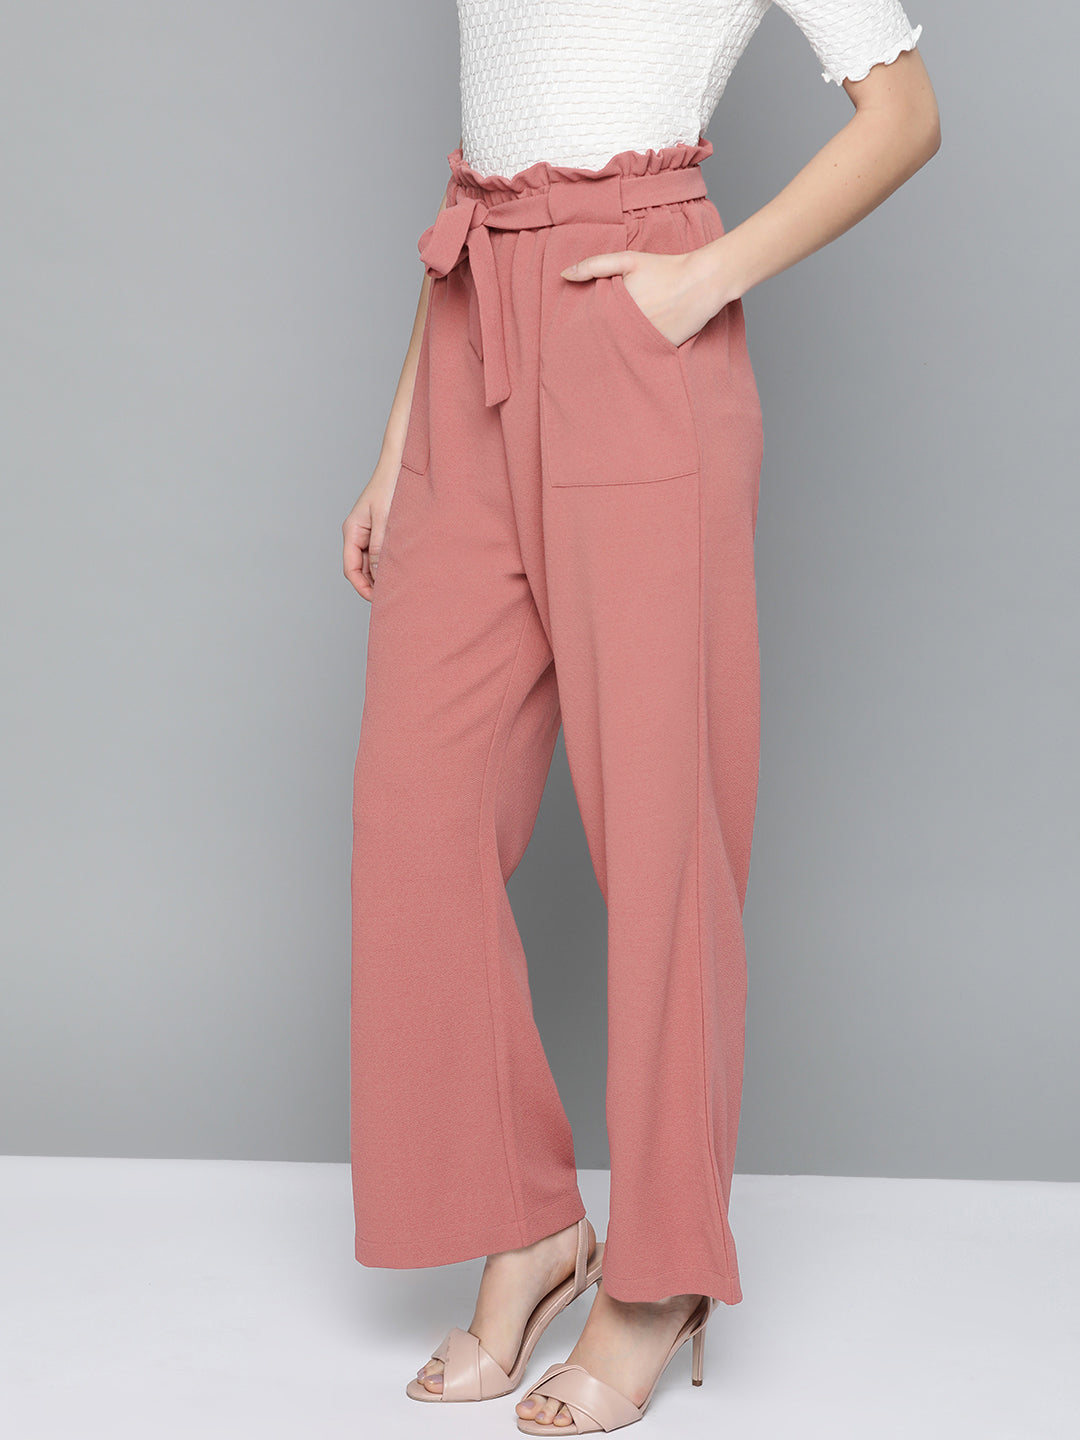 Solid Dusty Pink Paperbag Pants